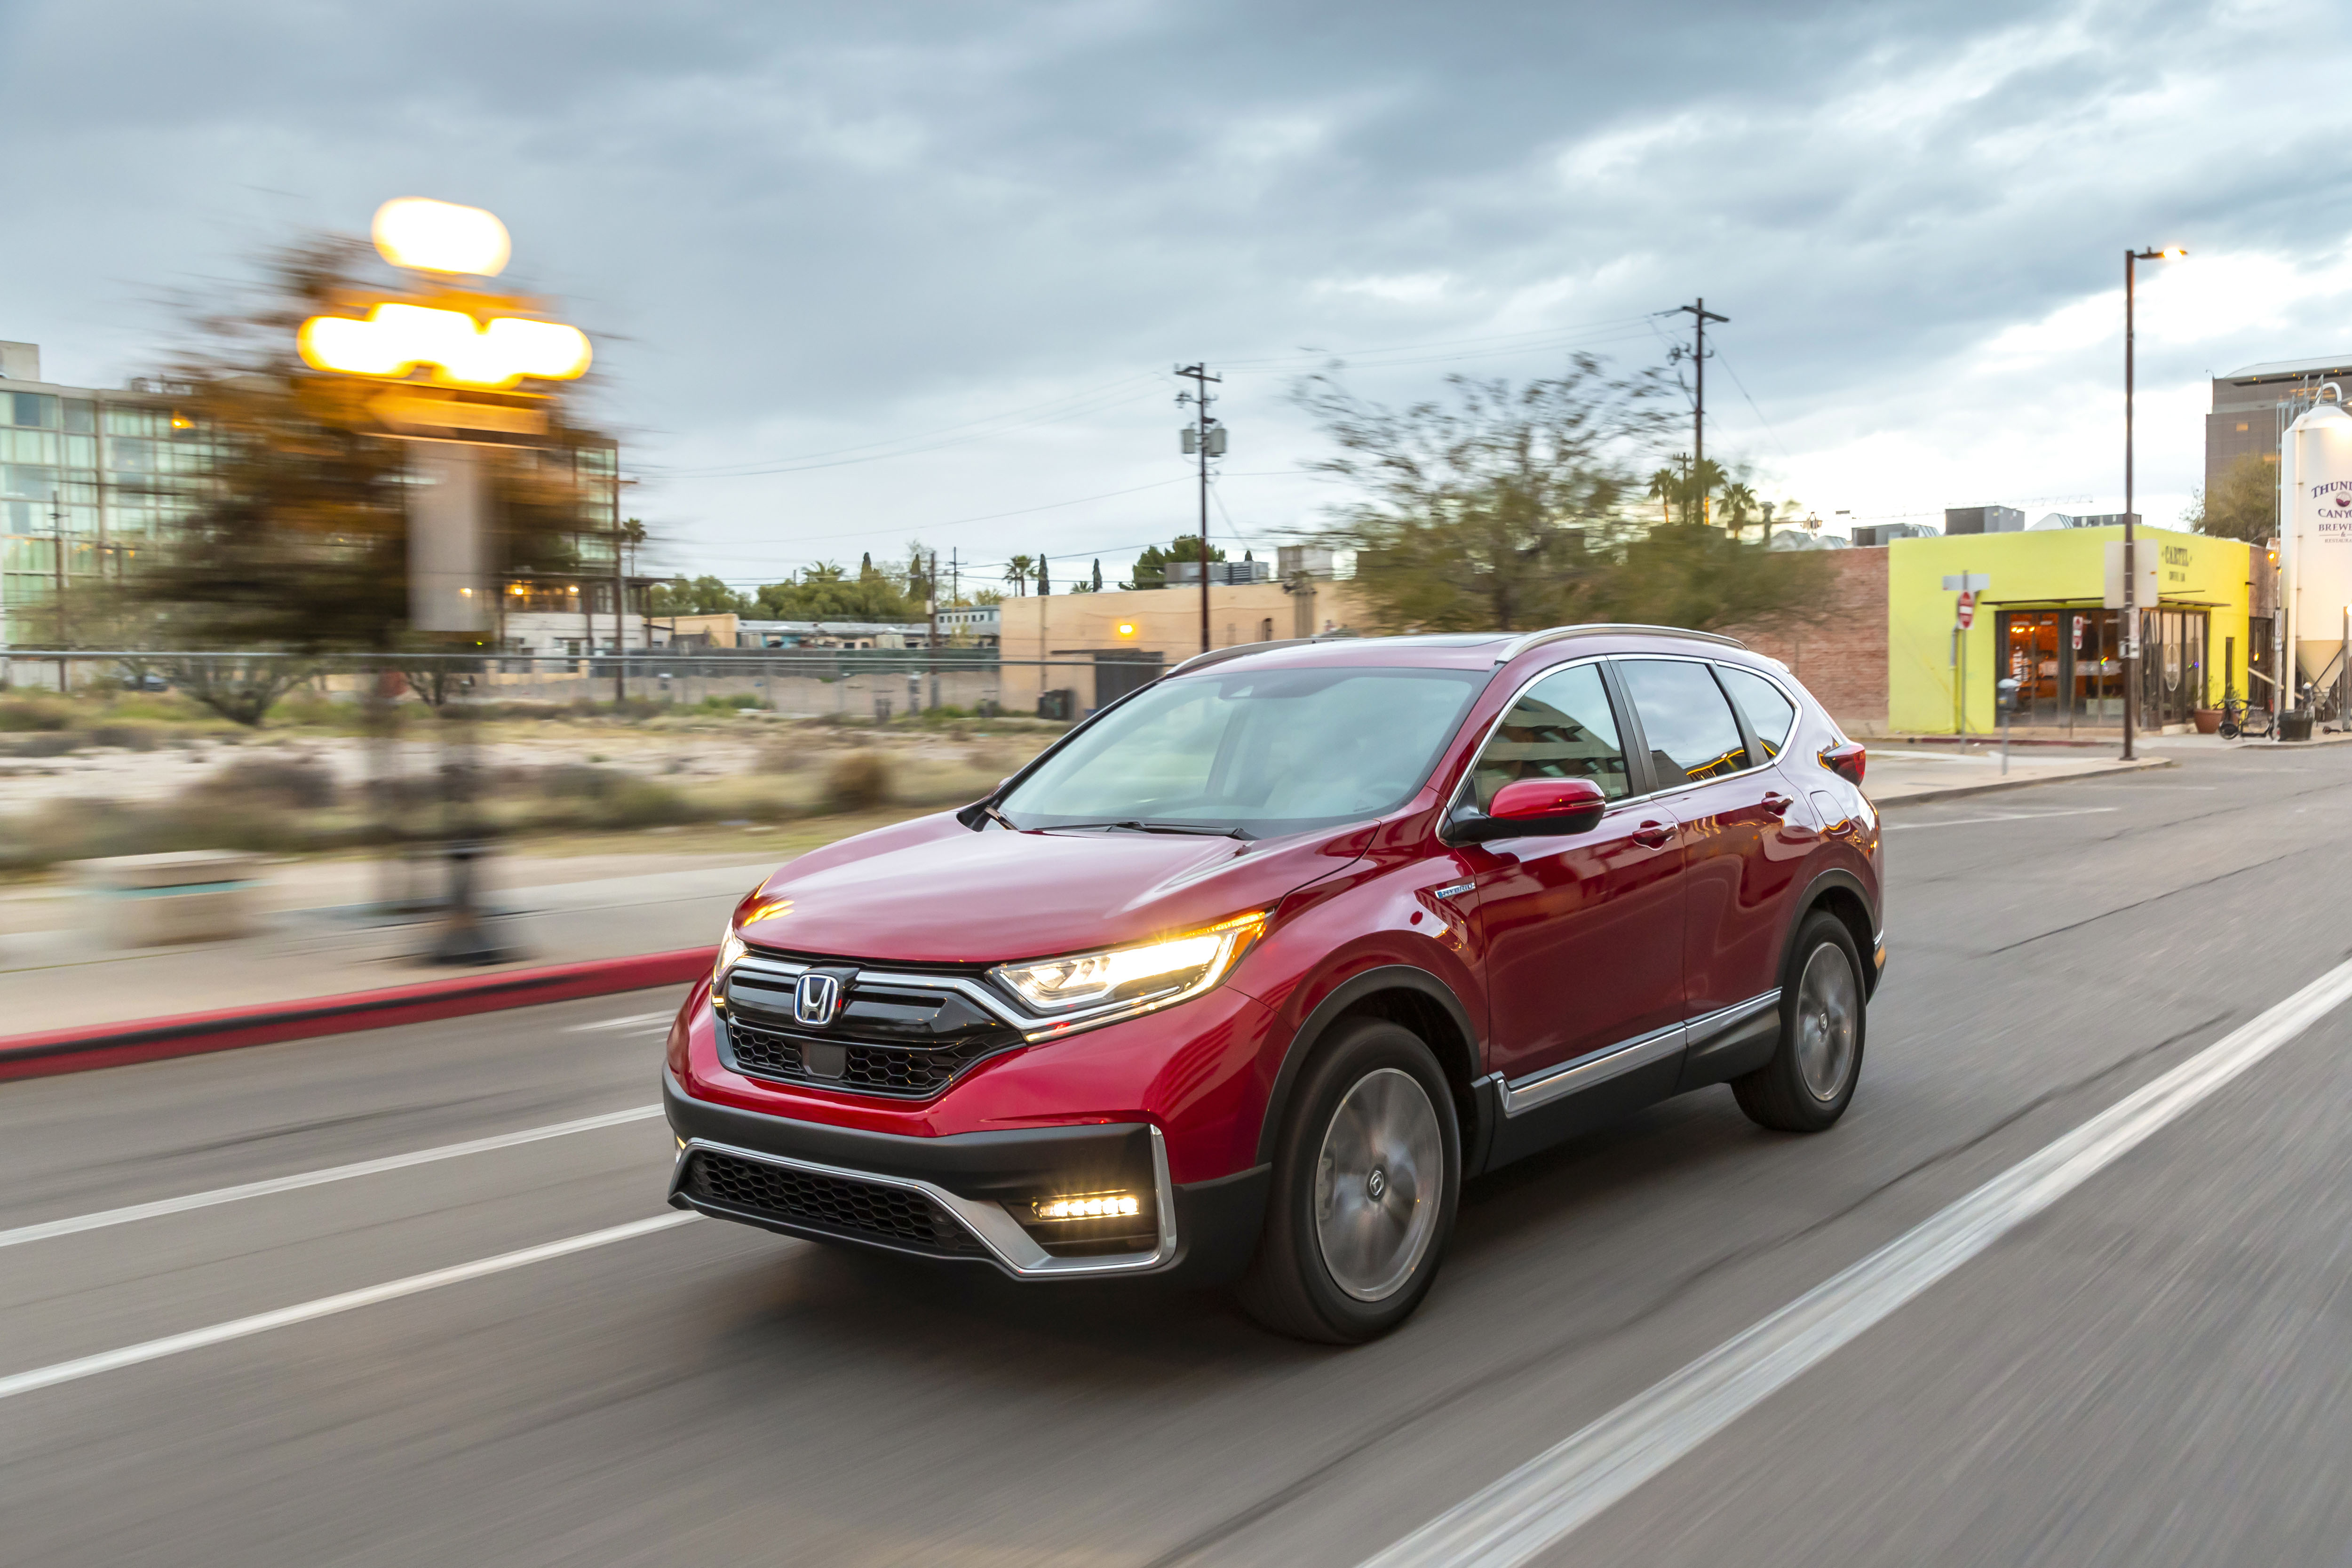 5 Best Hybrid SUVs for Camping Trips